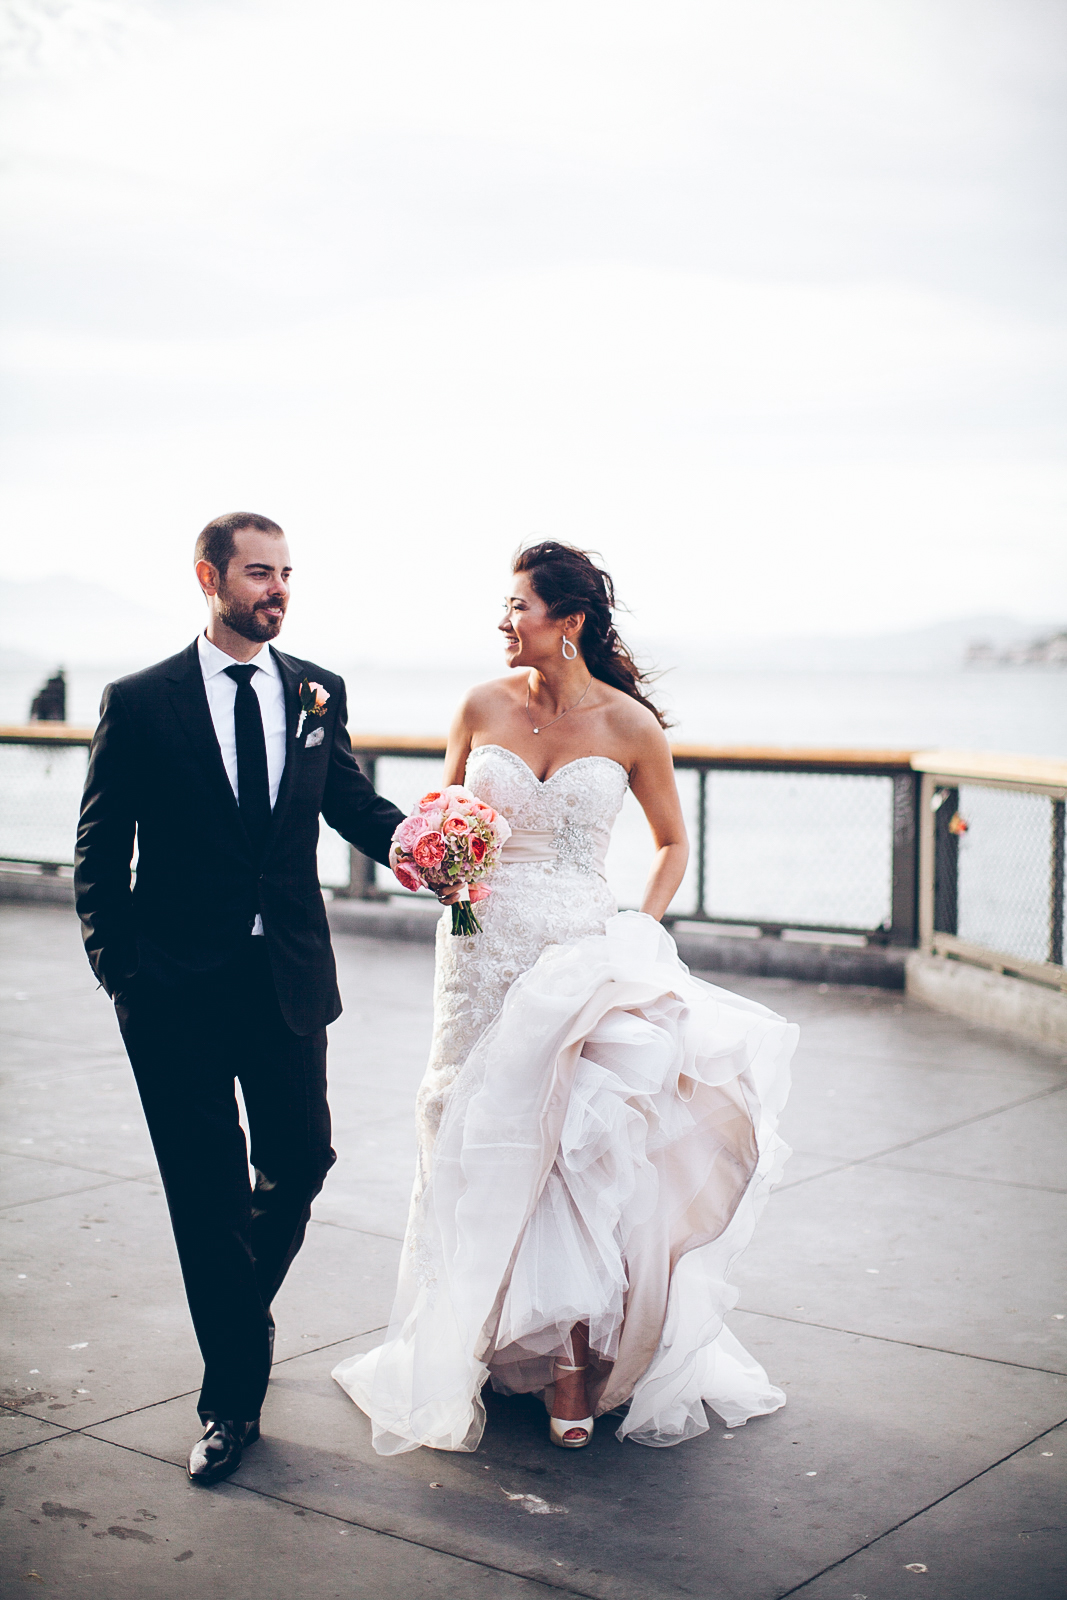 Meegan + Travis | San Francisco, CA